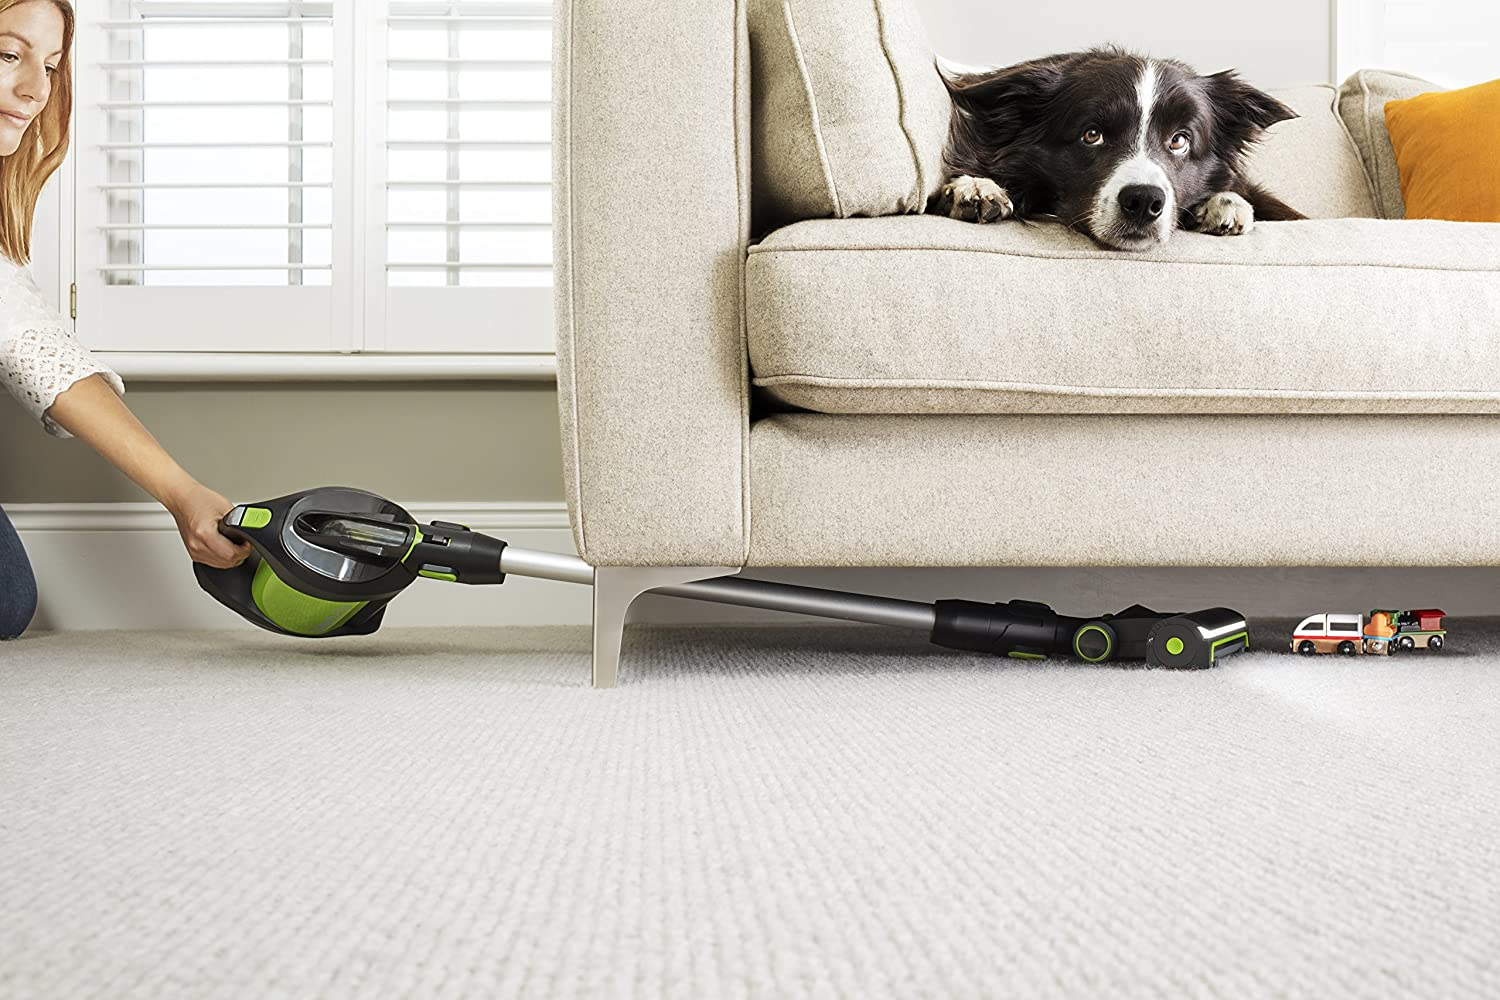 Green Gtech Pro Bagged Cordless Vacuum Cleaner 22 V